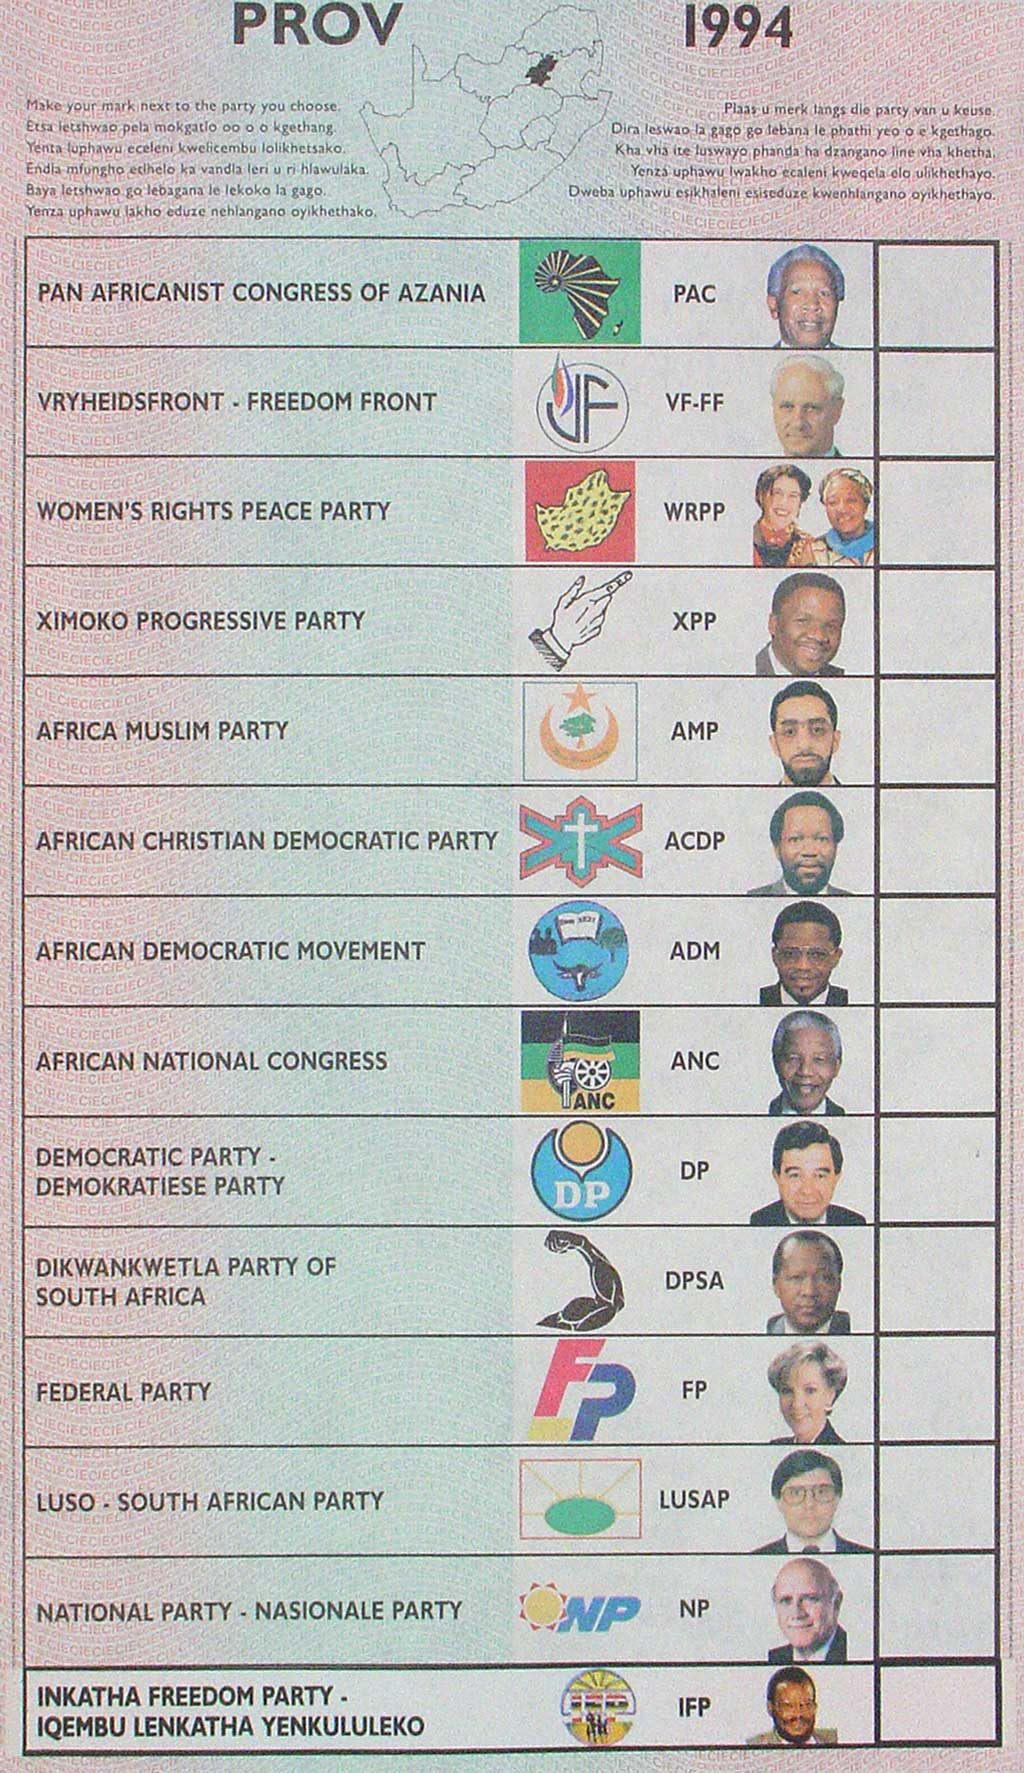 an image of the ballot from South Africa's 1994 election with rows containing the name of the party the candidate was running for, the party logo, the acronym for the party, and a headshot of the candidate